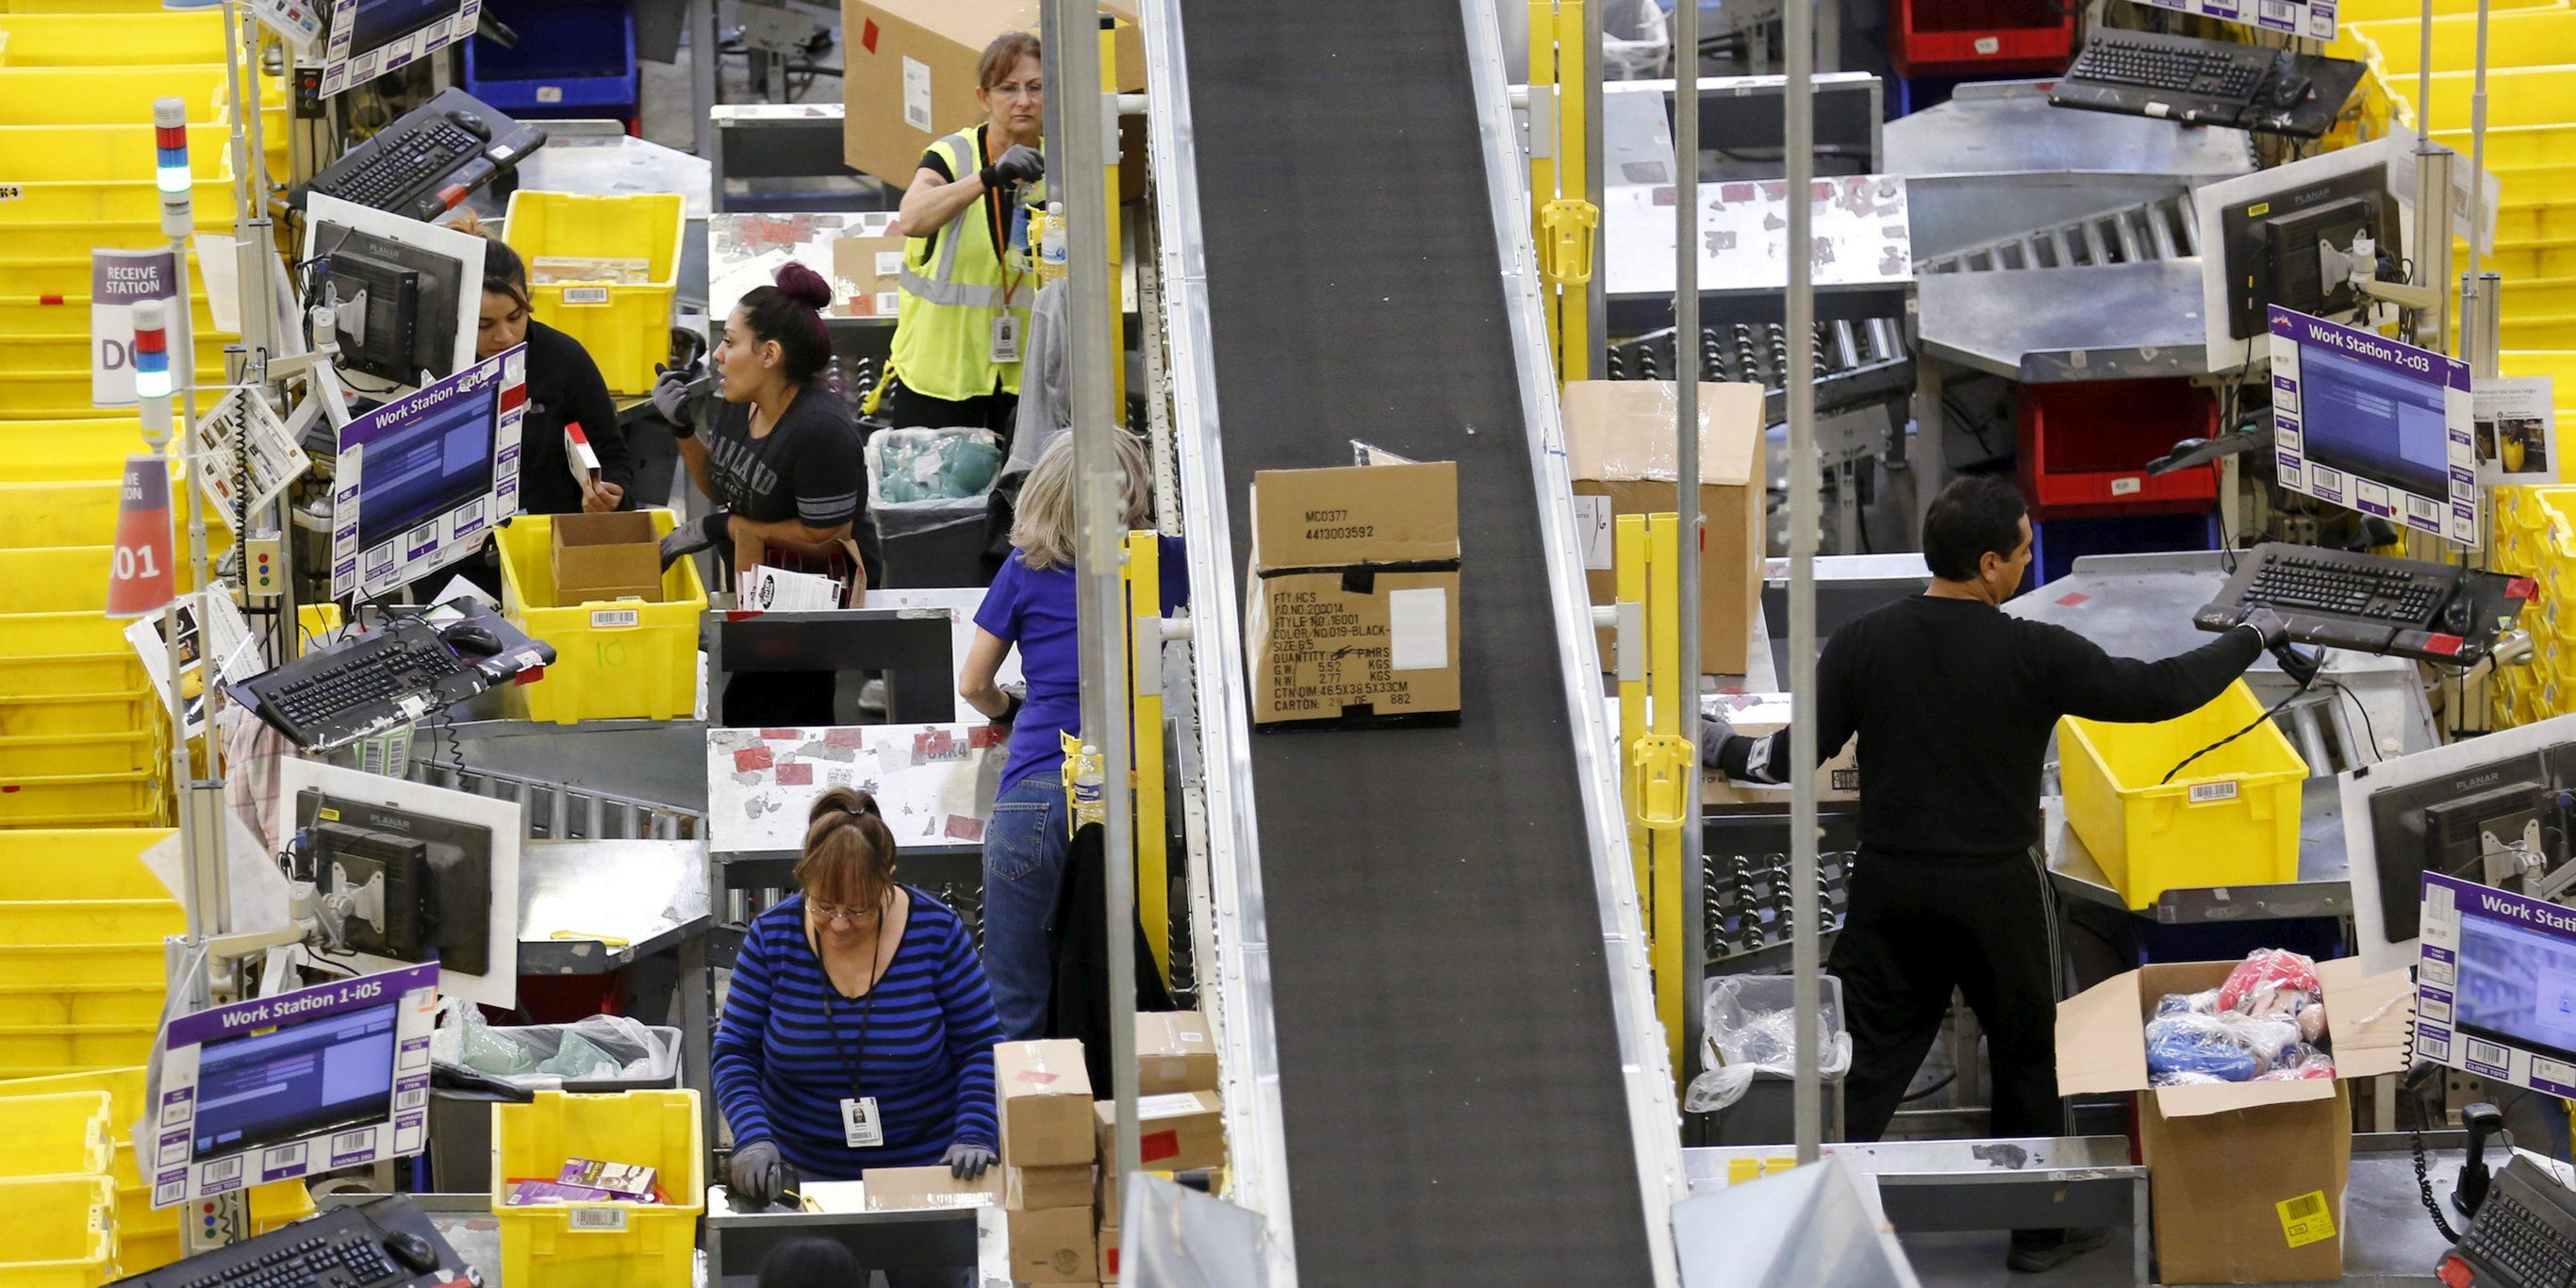 Amazon Warehouse Work Conditions Savaged By New York Labor Union